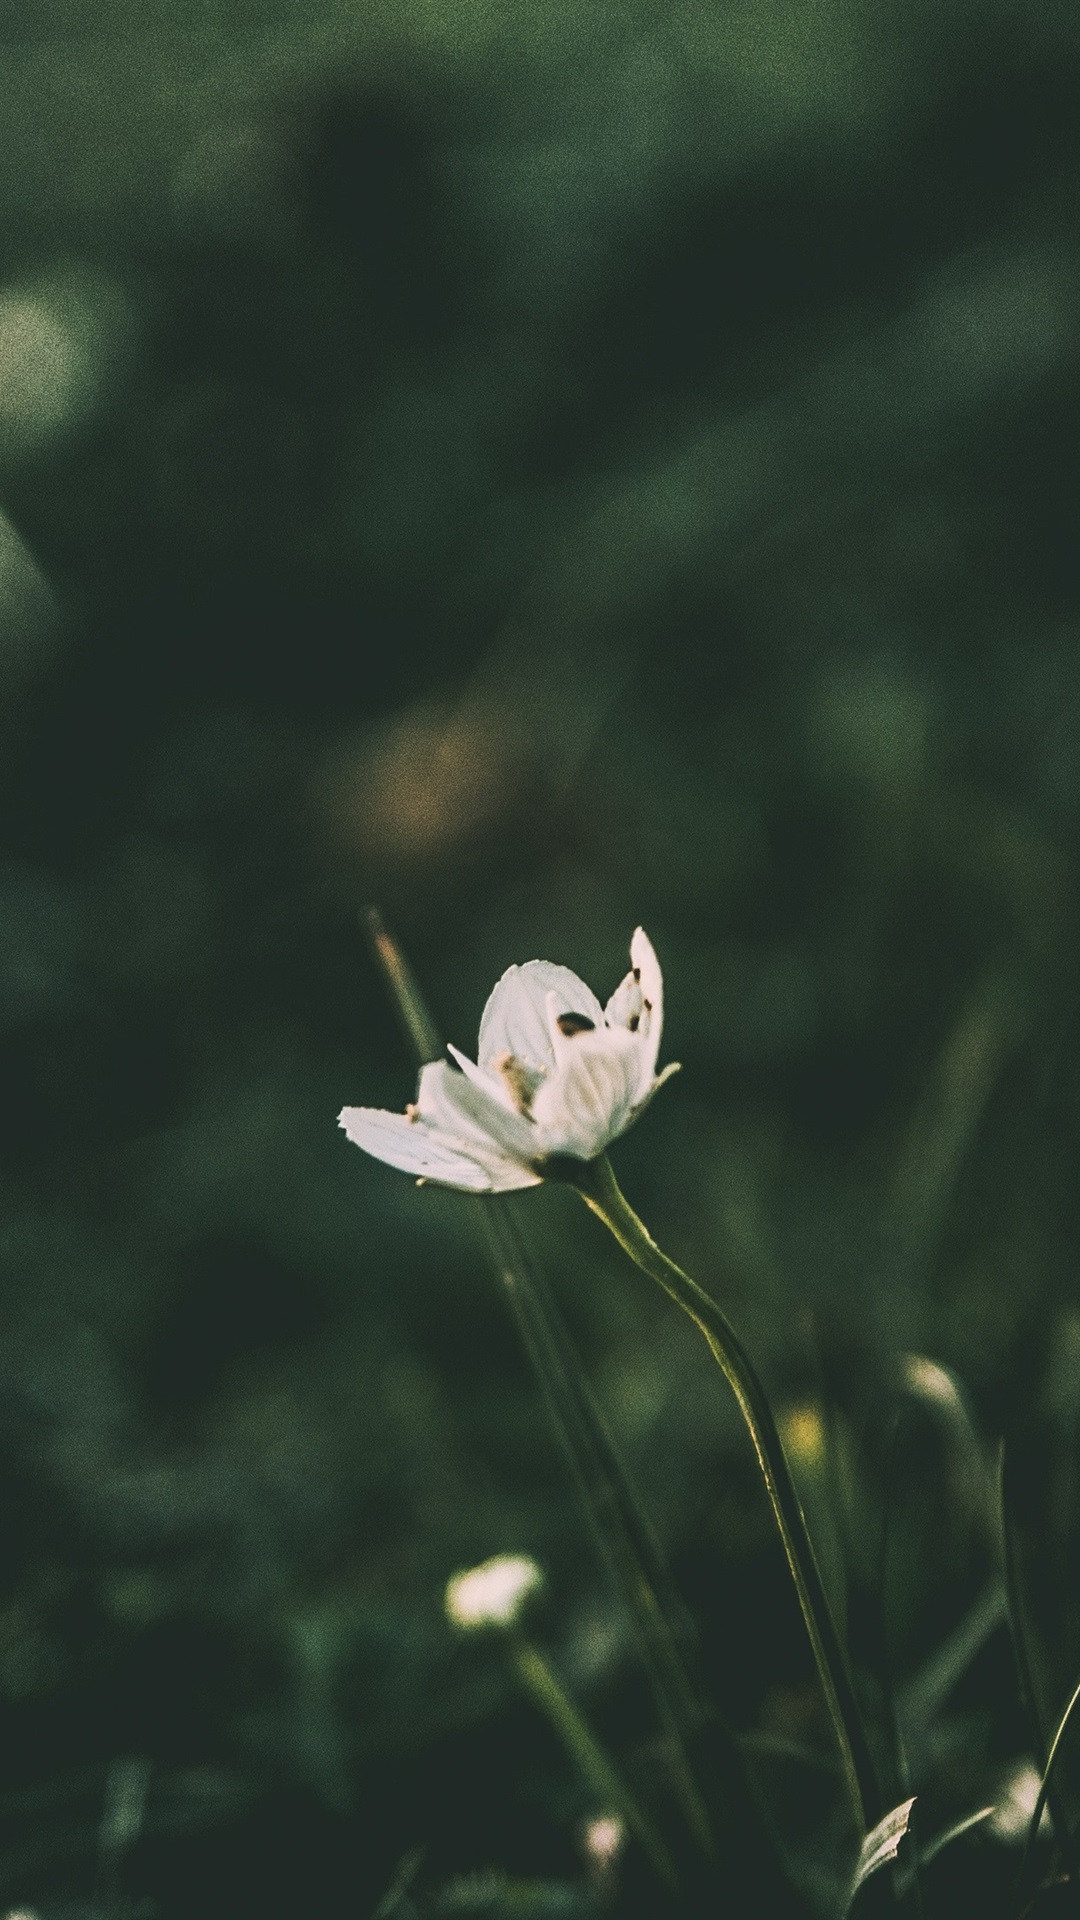 White Little Flower Blurry Background 1080x1920 Iphone 8766s